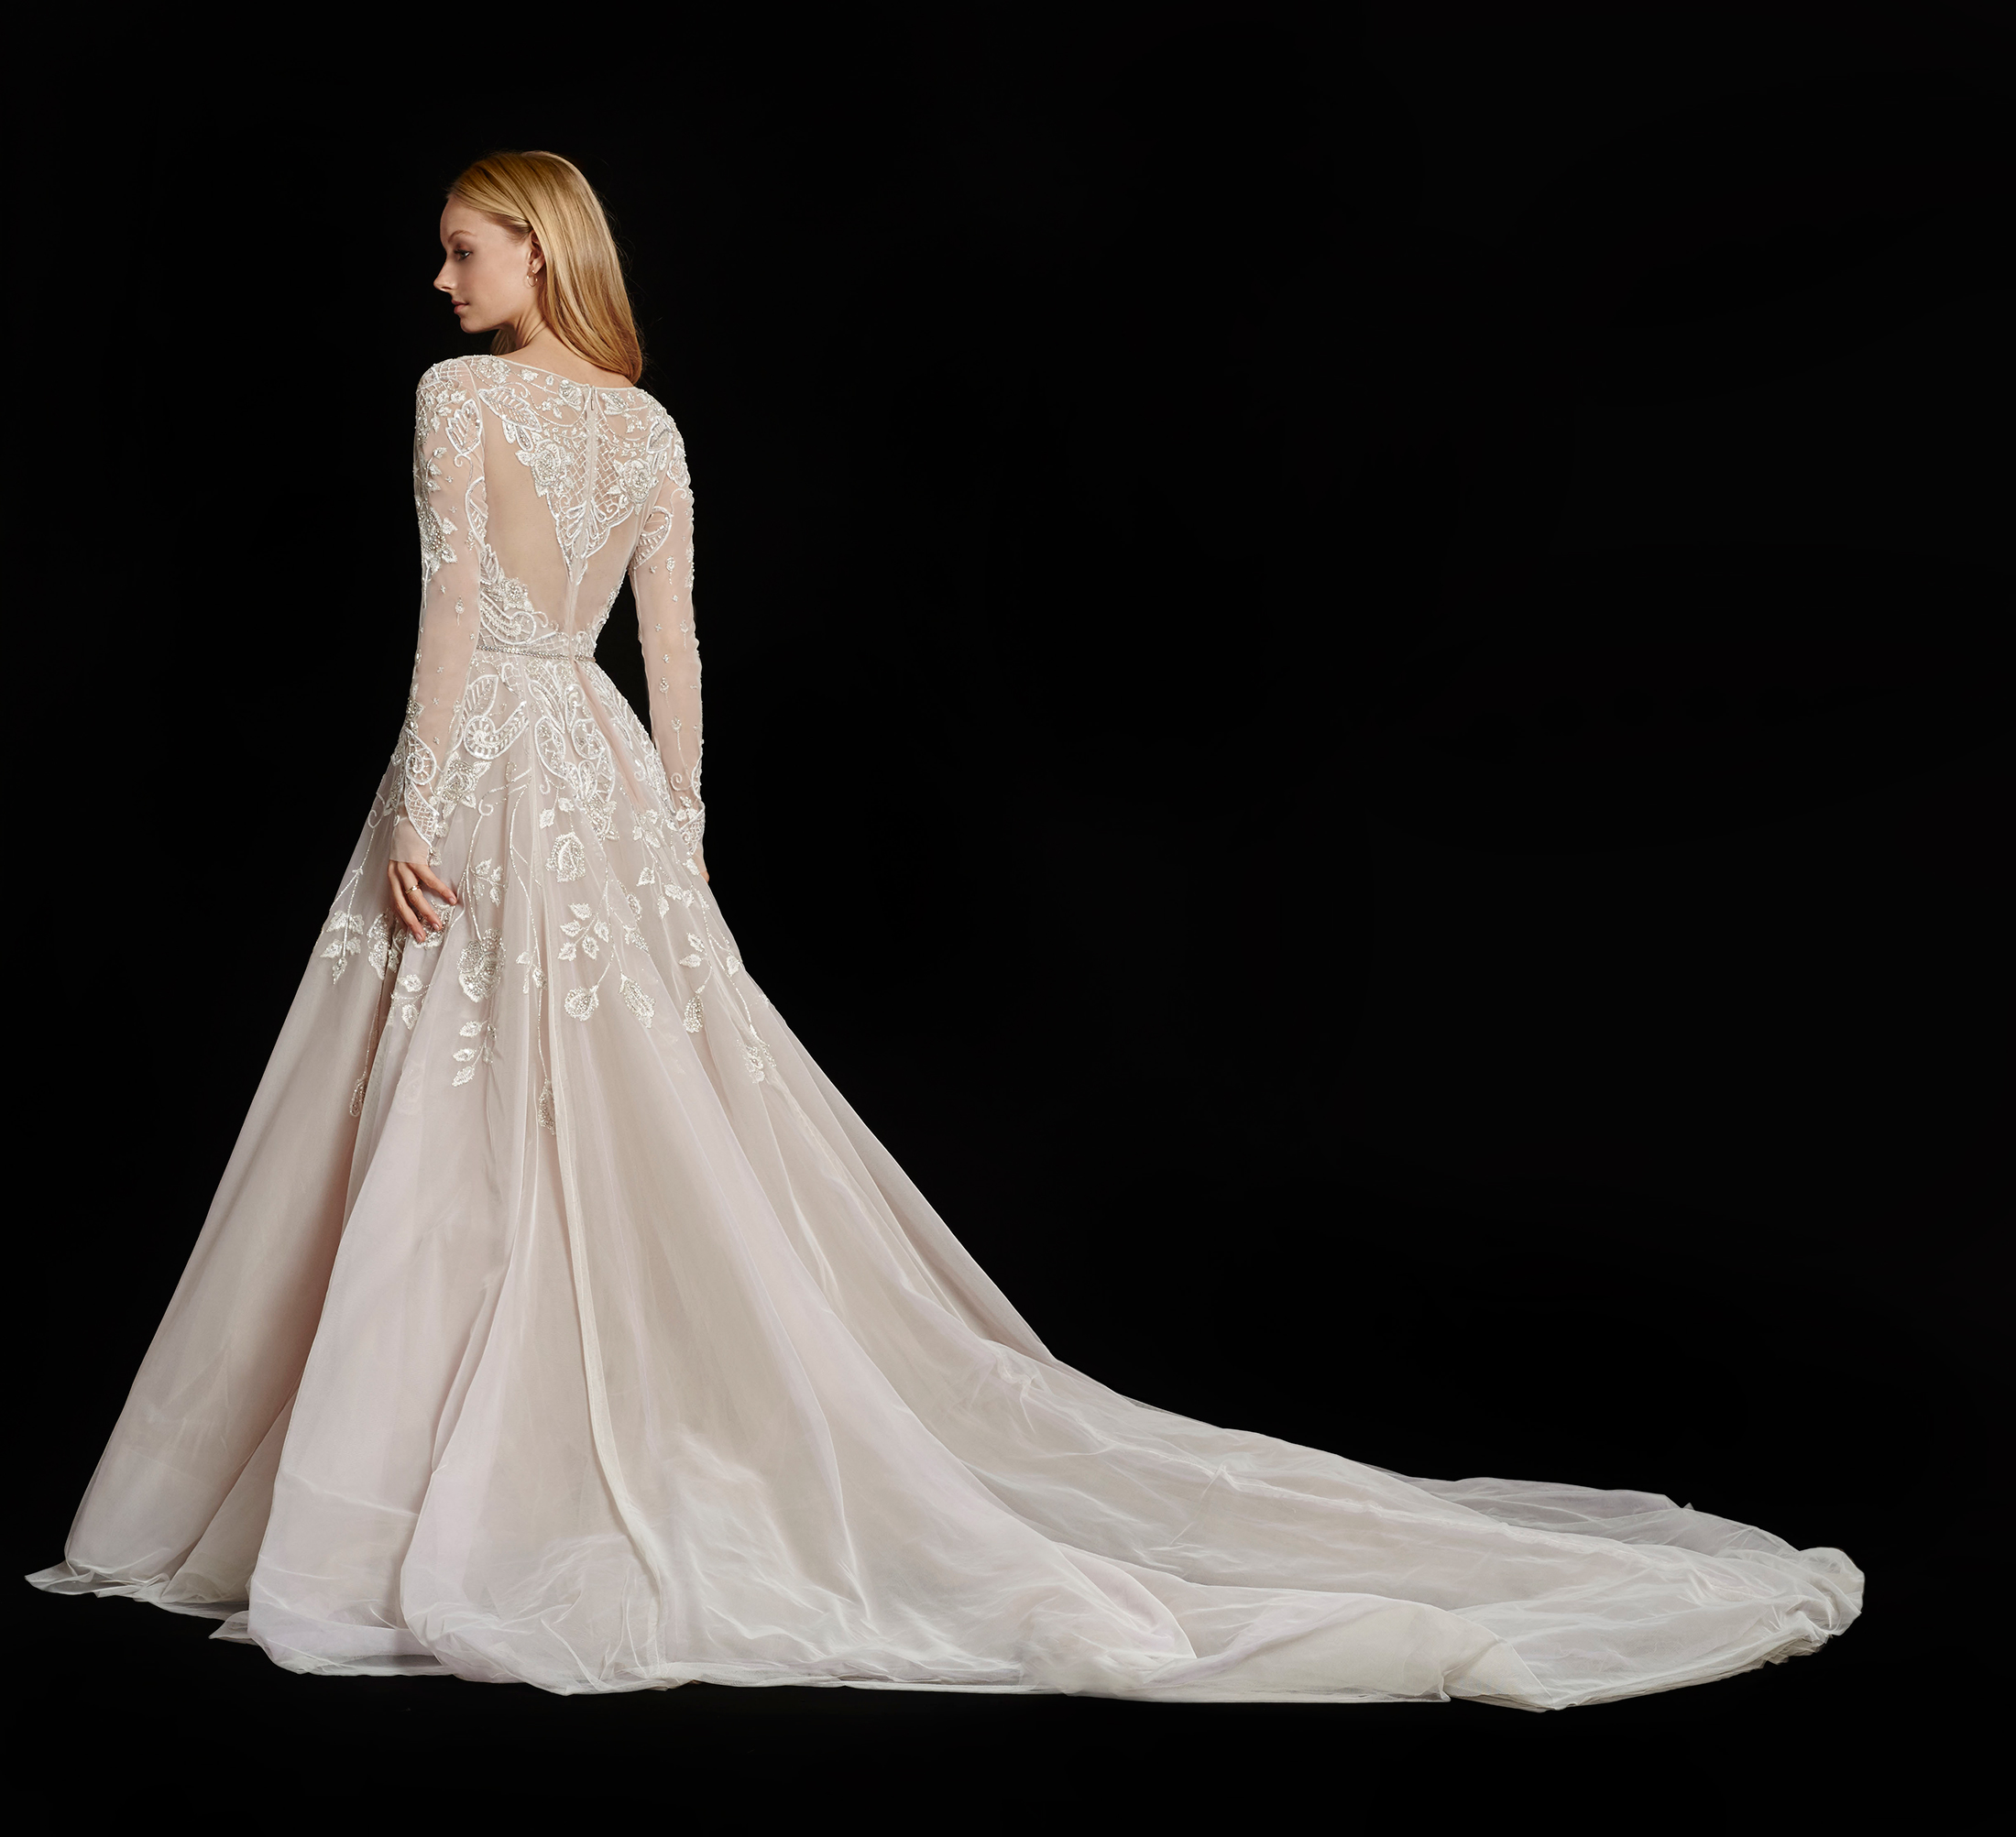 Hphayley bridal gown dallas texas stardust celebrations for Hayley paige wedding dresses cost